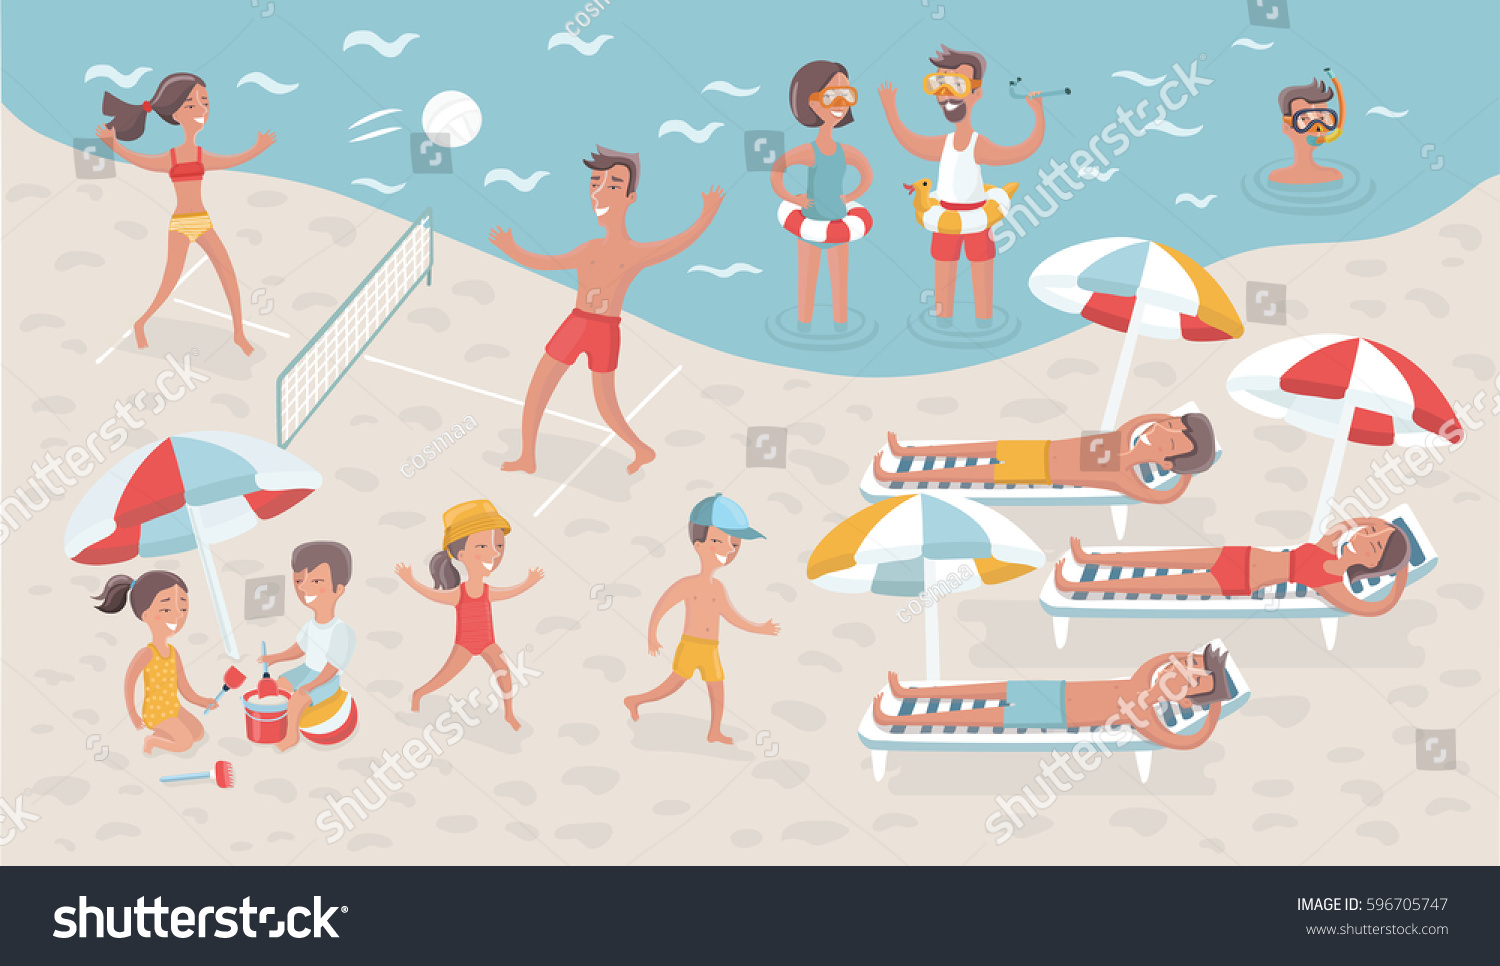 vector cartoon funny illustration scene people stock vector rh shutterstock com cartoon beach scene with people cartoon beach scene background